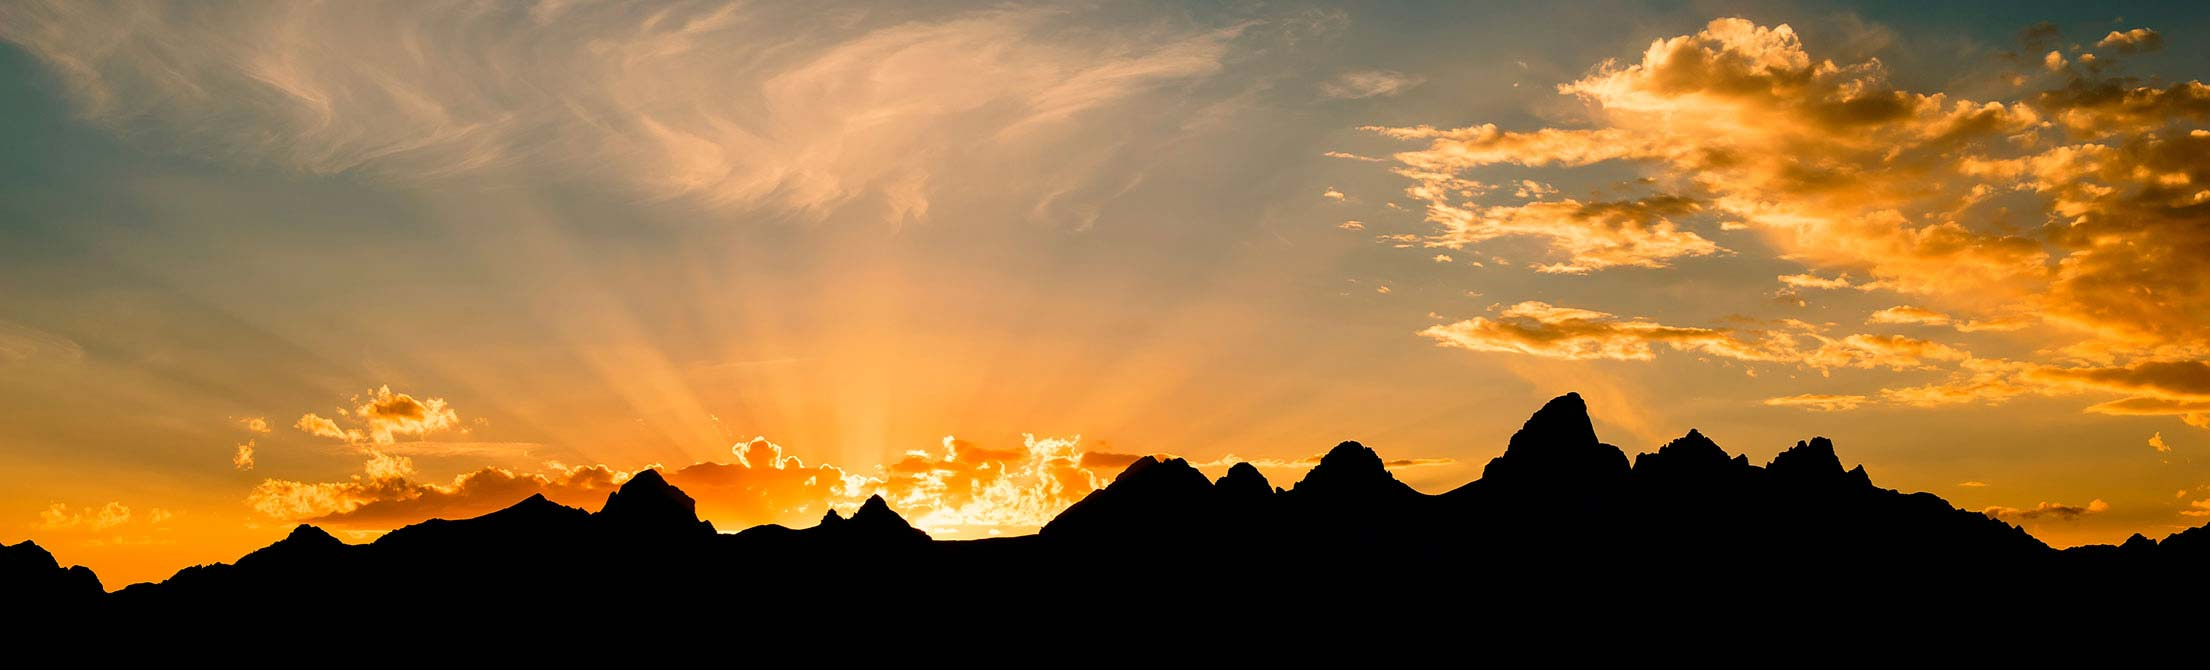 tetons in silhouette in front of a sunset